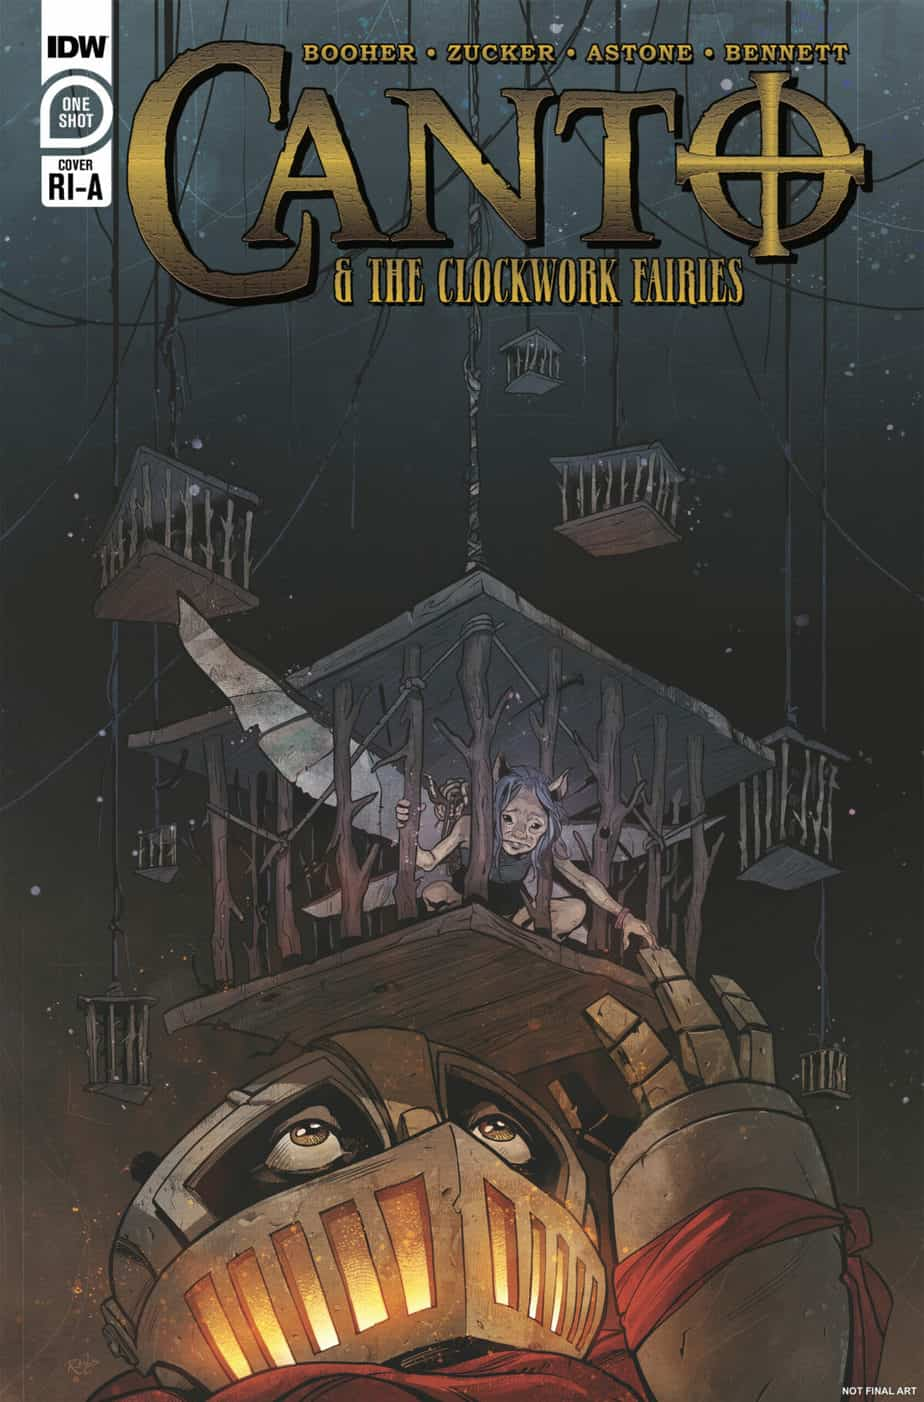 Canto and the Clockwork Fairies #1 - Retailer Incentive A